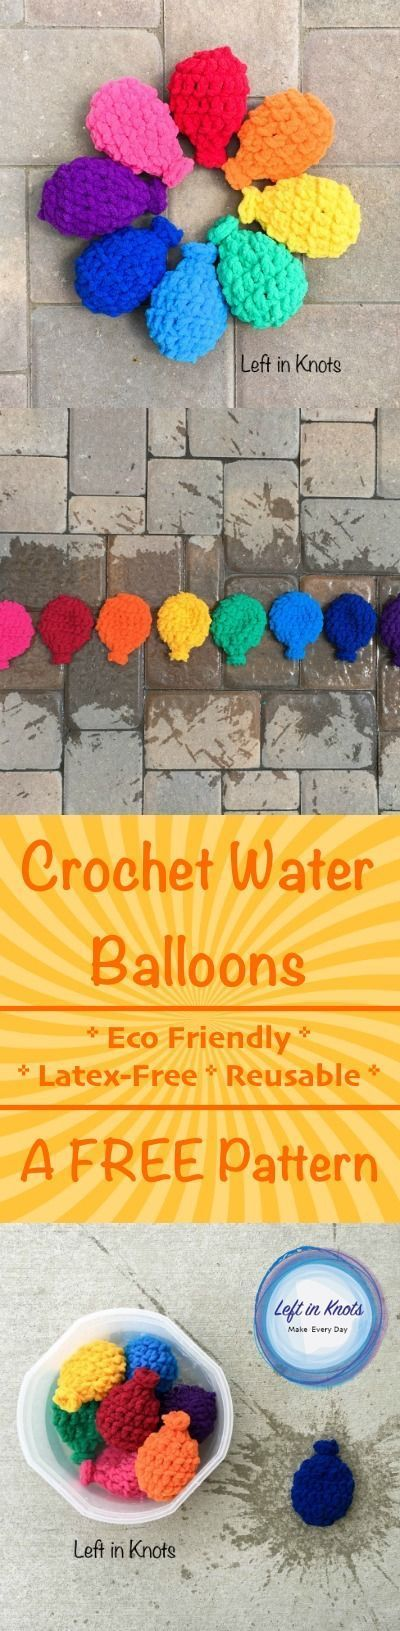 A FREE crochet pattern, Eco friendly water balloons that will bring you hours of fun! Made with Bernat Blanket Yarn, this is a fast project and perfect for beginners! #crochet #ecocrochet #bernatblanketyarn #yarn #diy #summerfun /yarnspirations/